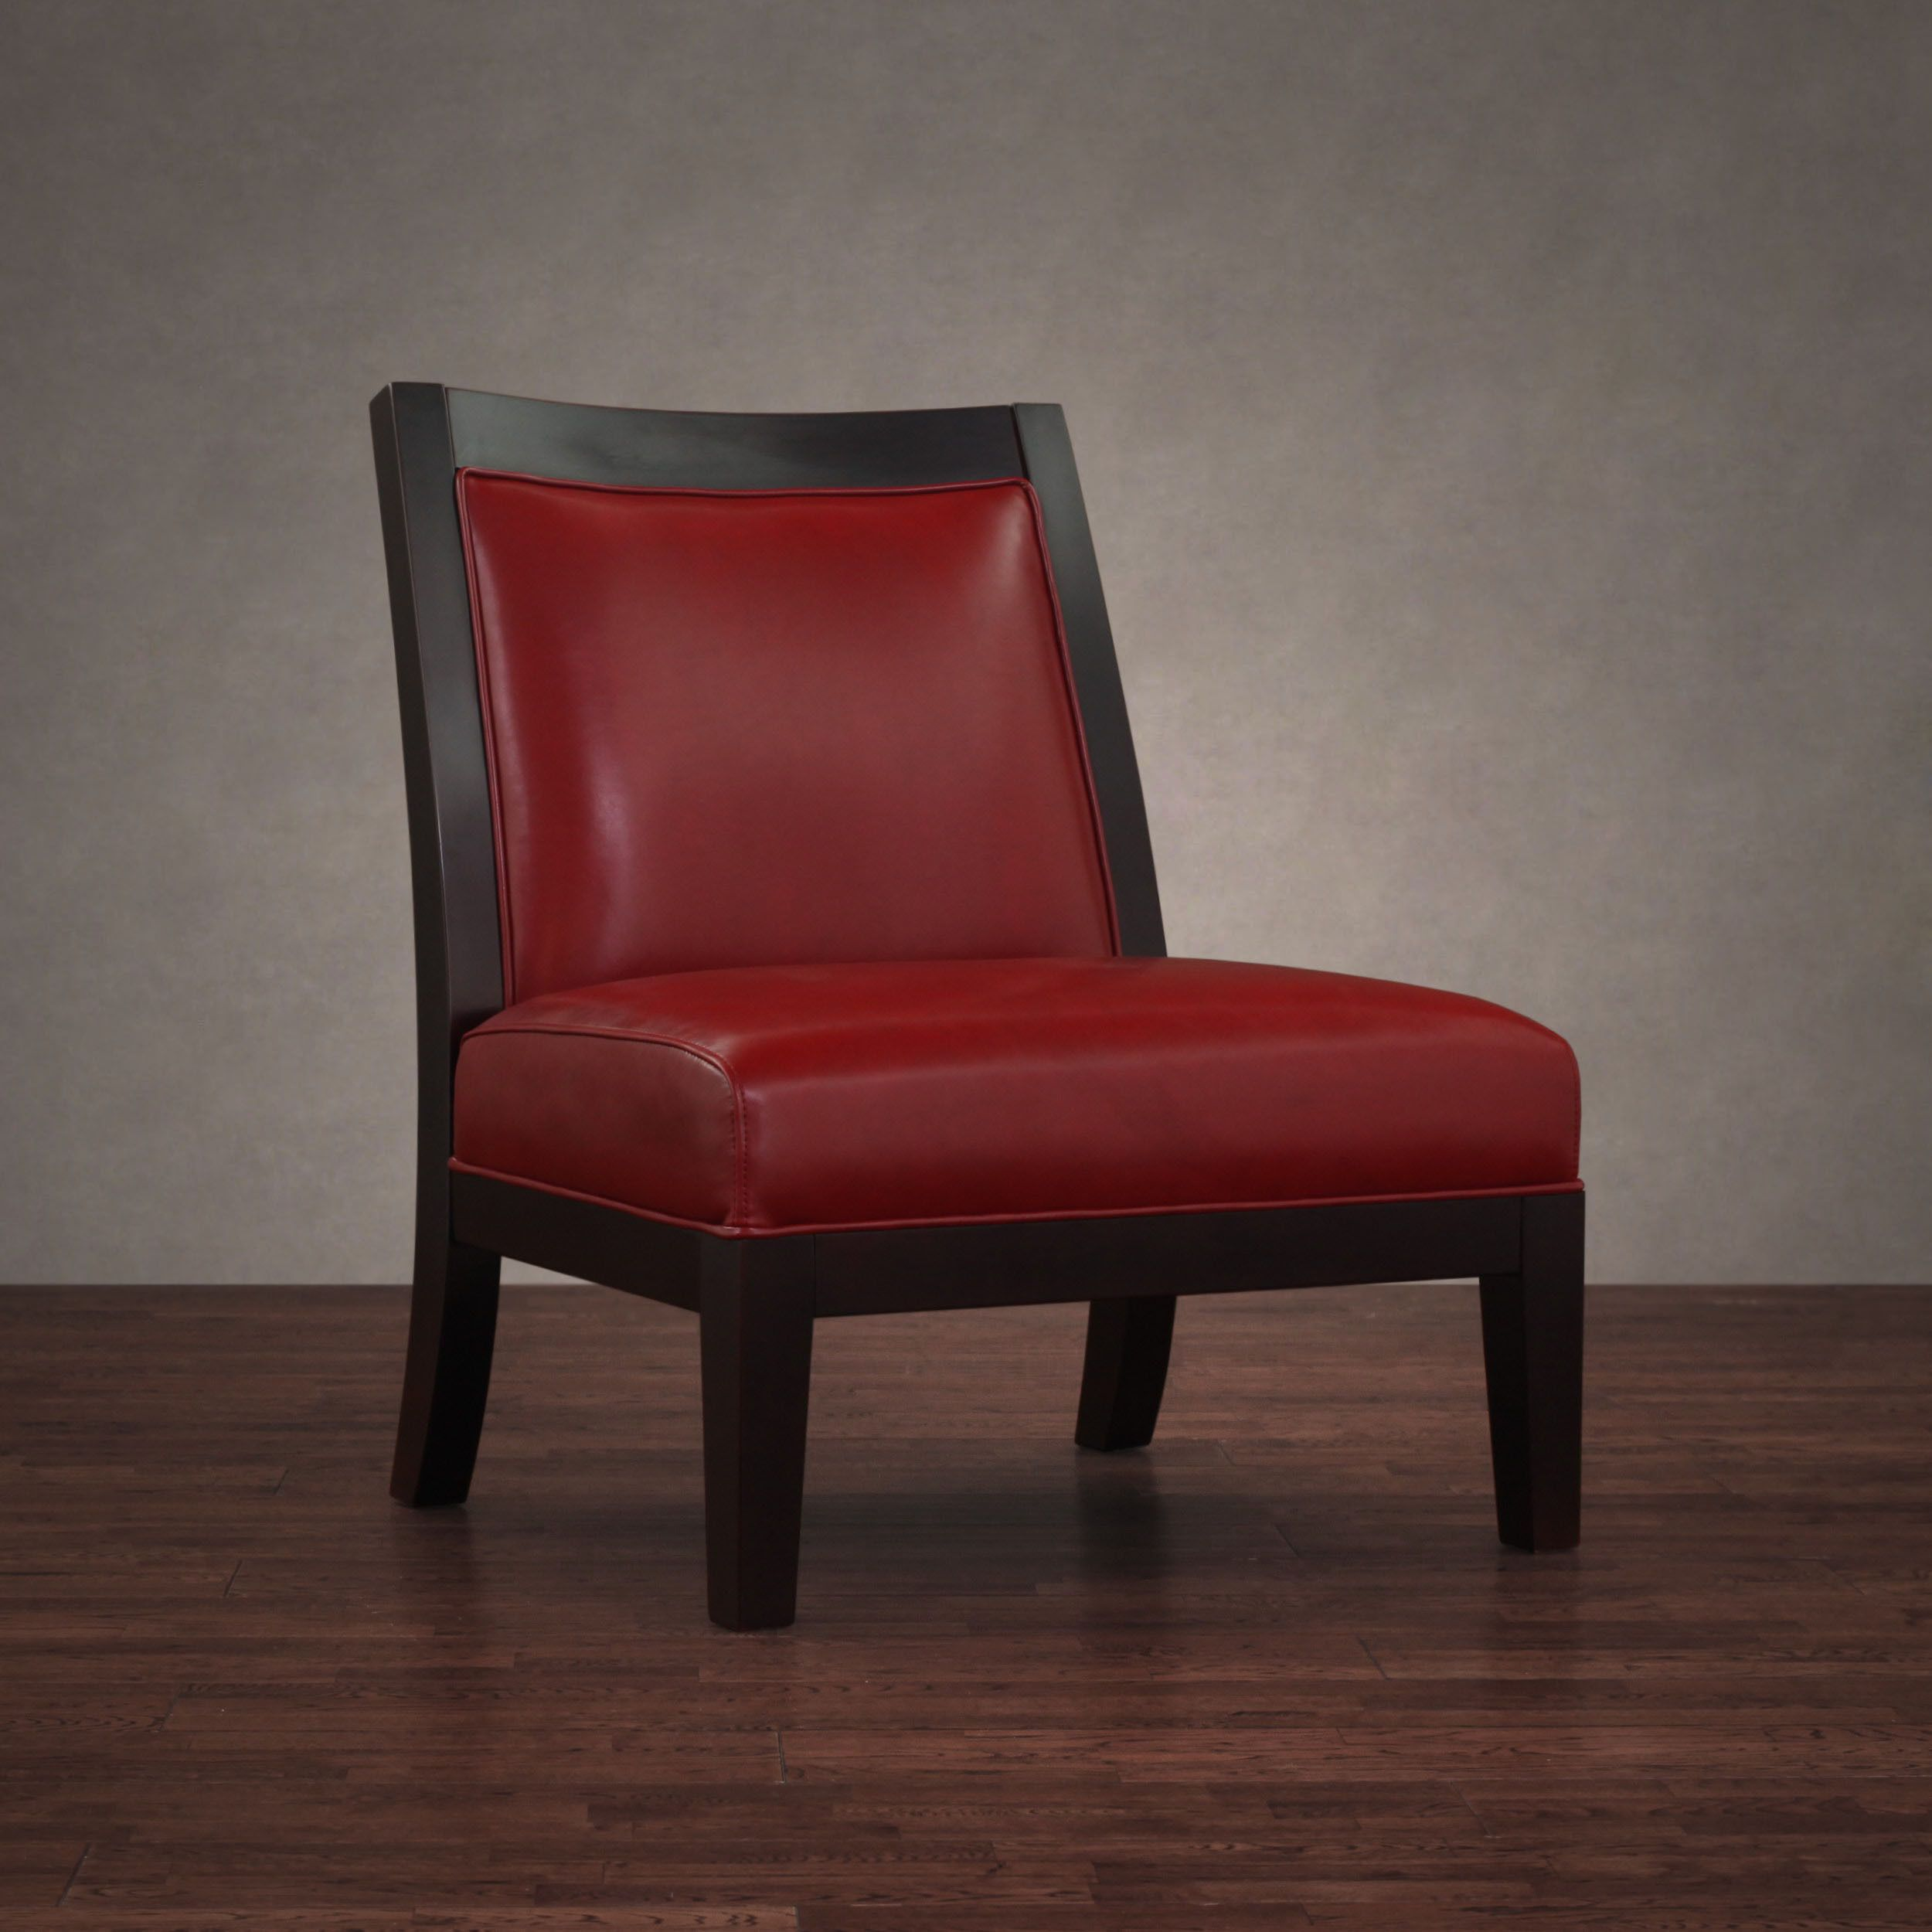 Add A Modern Touch To Your Decor With This Contemporary Red Leather Chair Featuring A Durable Hardwood Red Leather Chair Leather Chair Accent Chairs For Sale